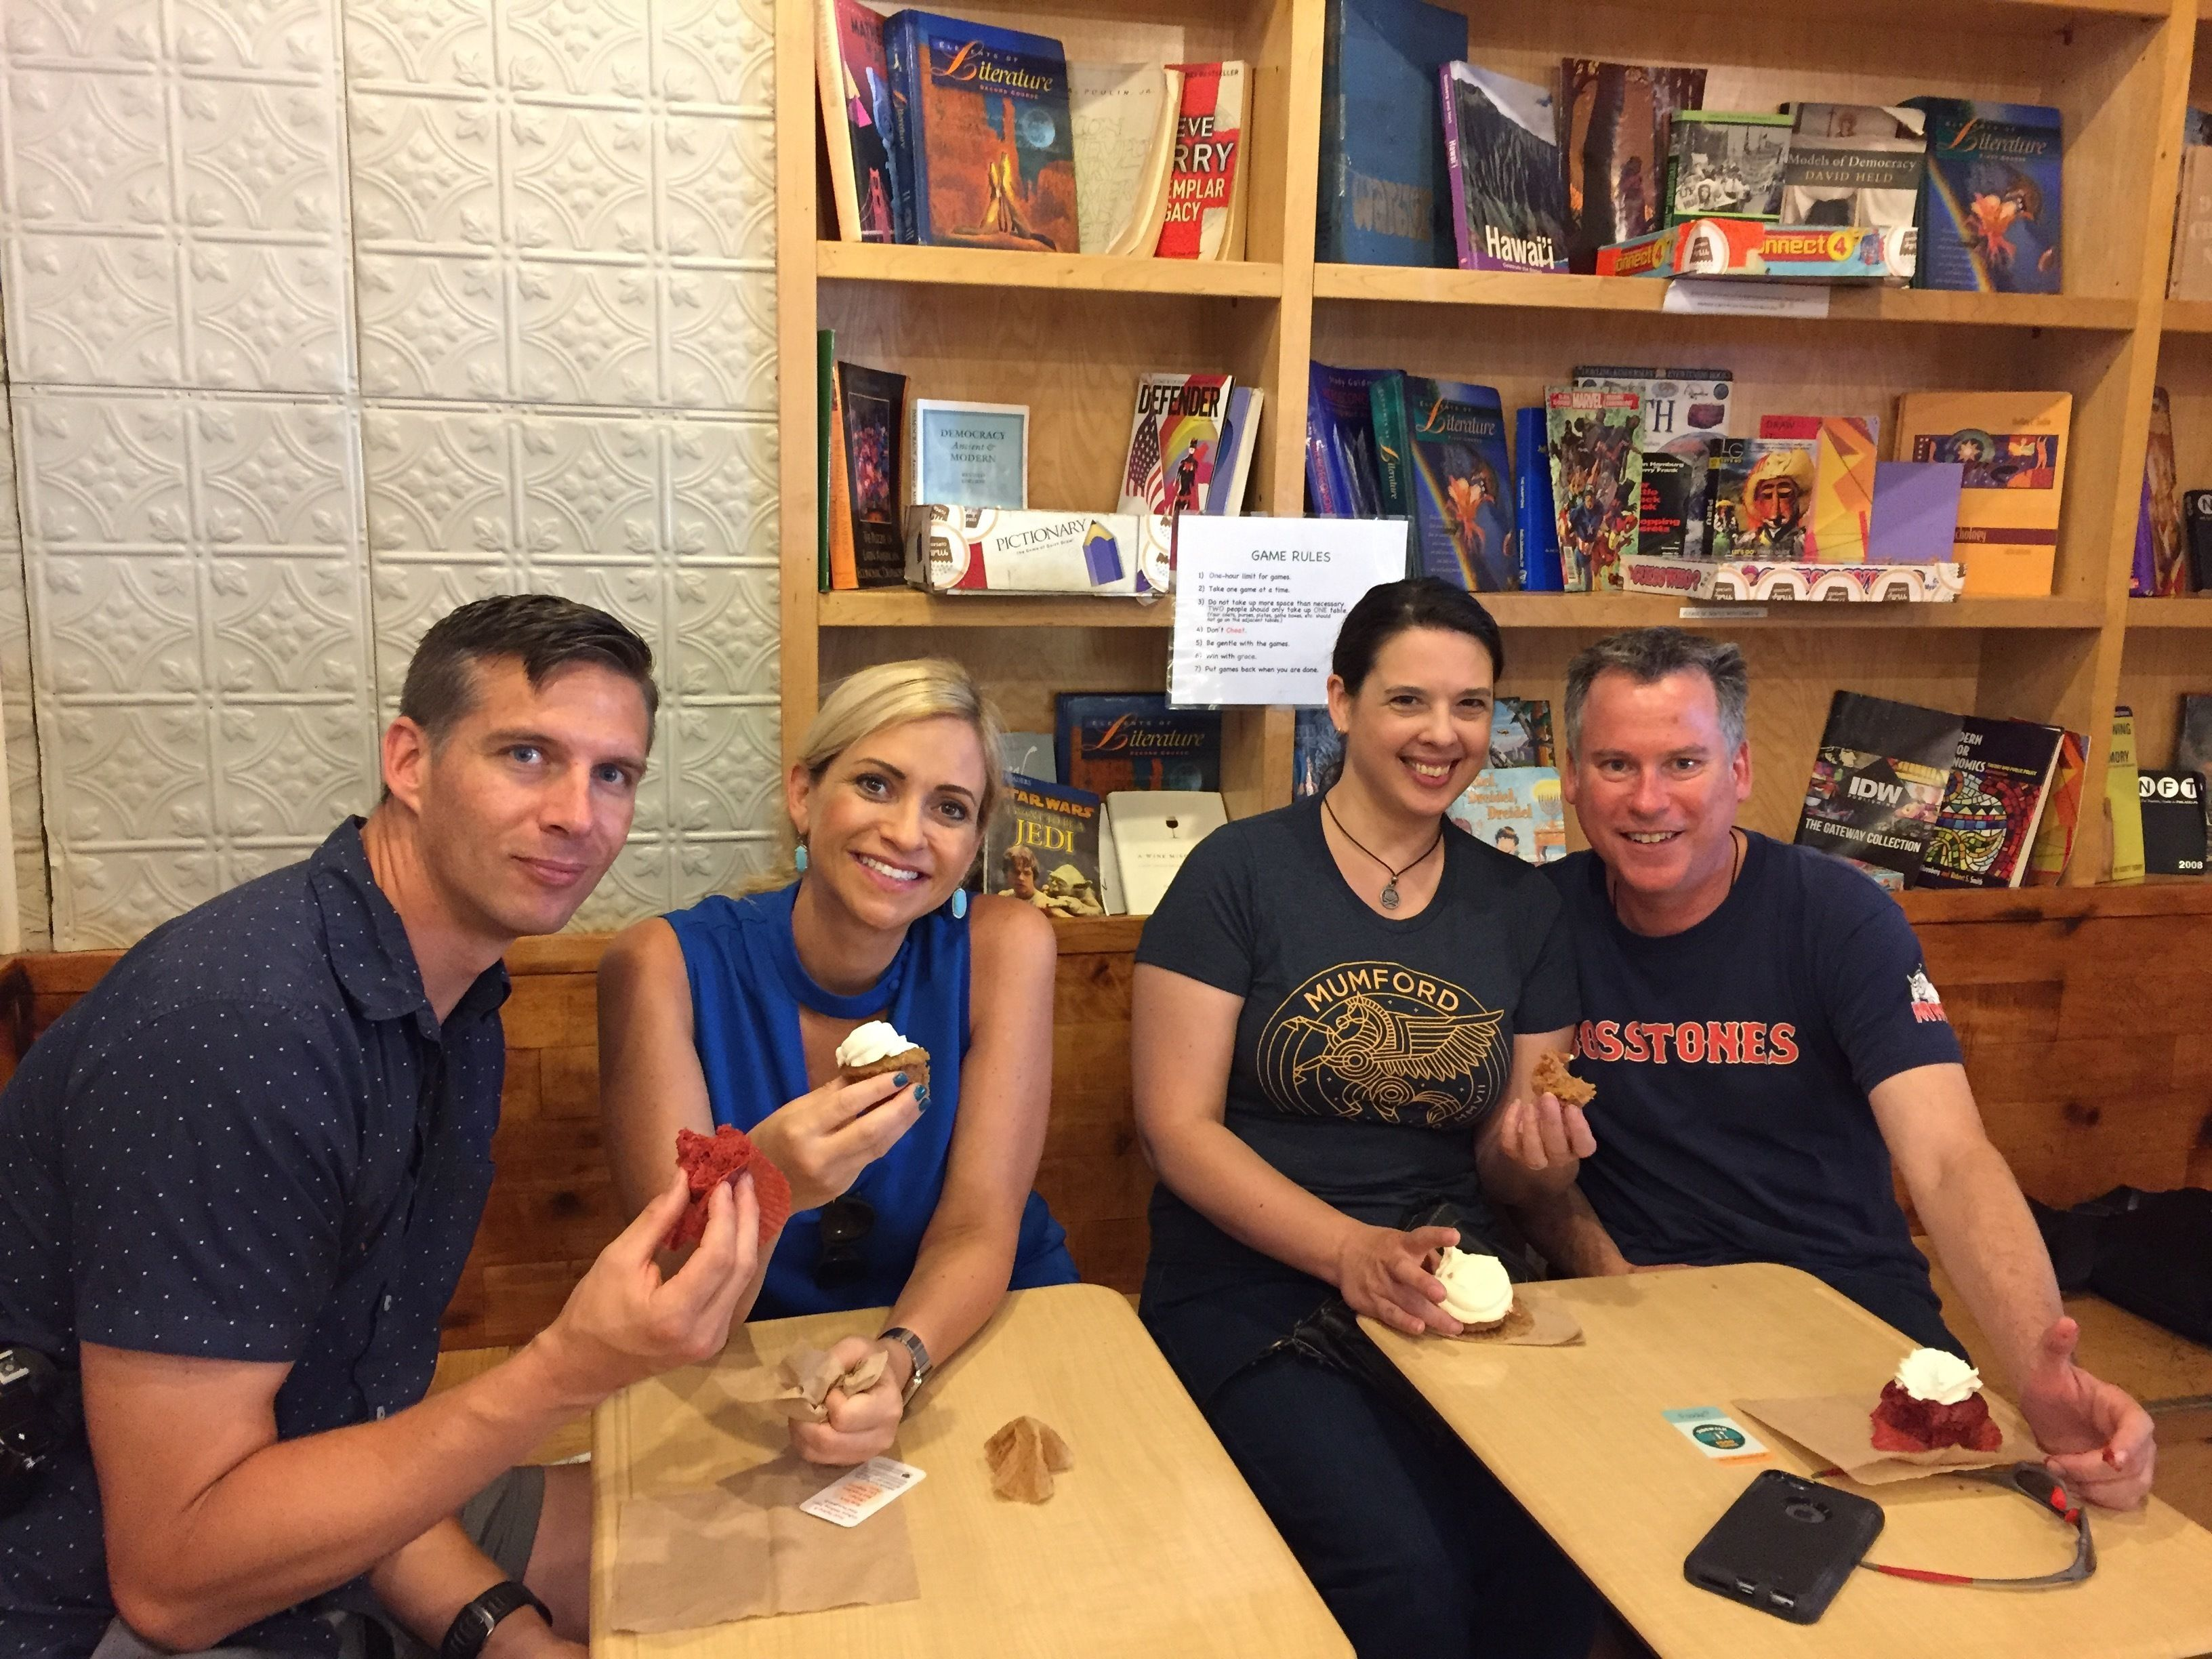 Group having cupcakes in New York